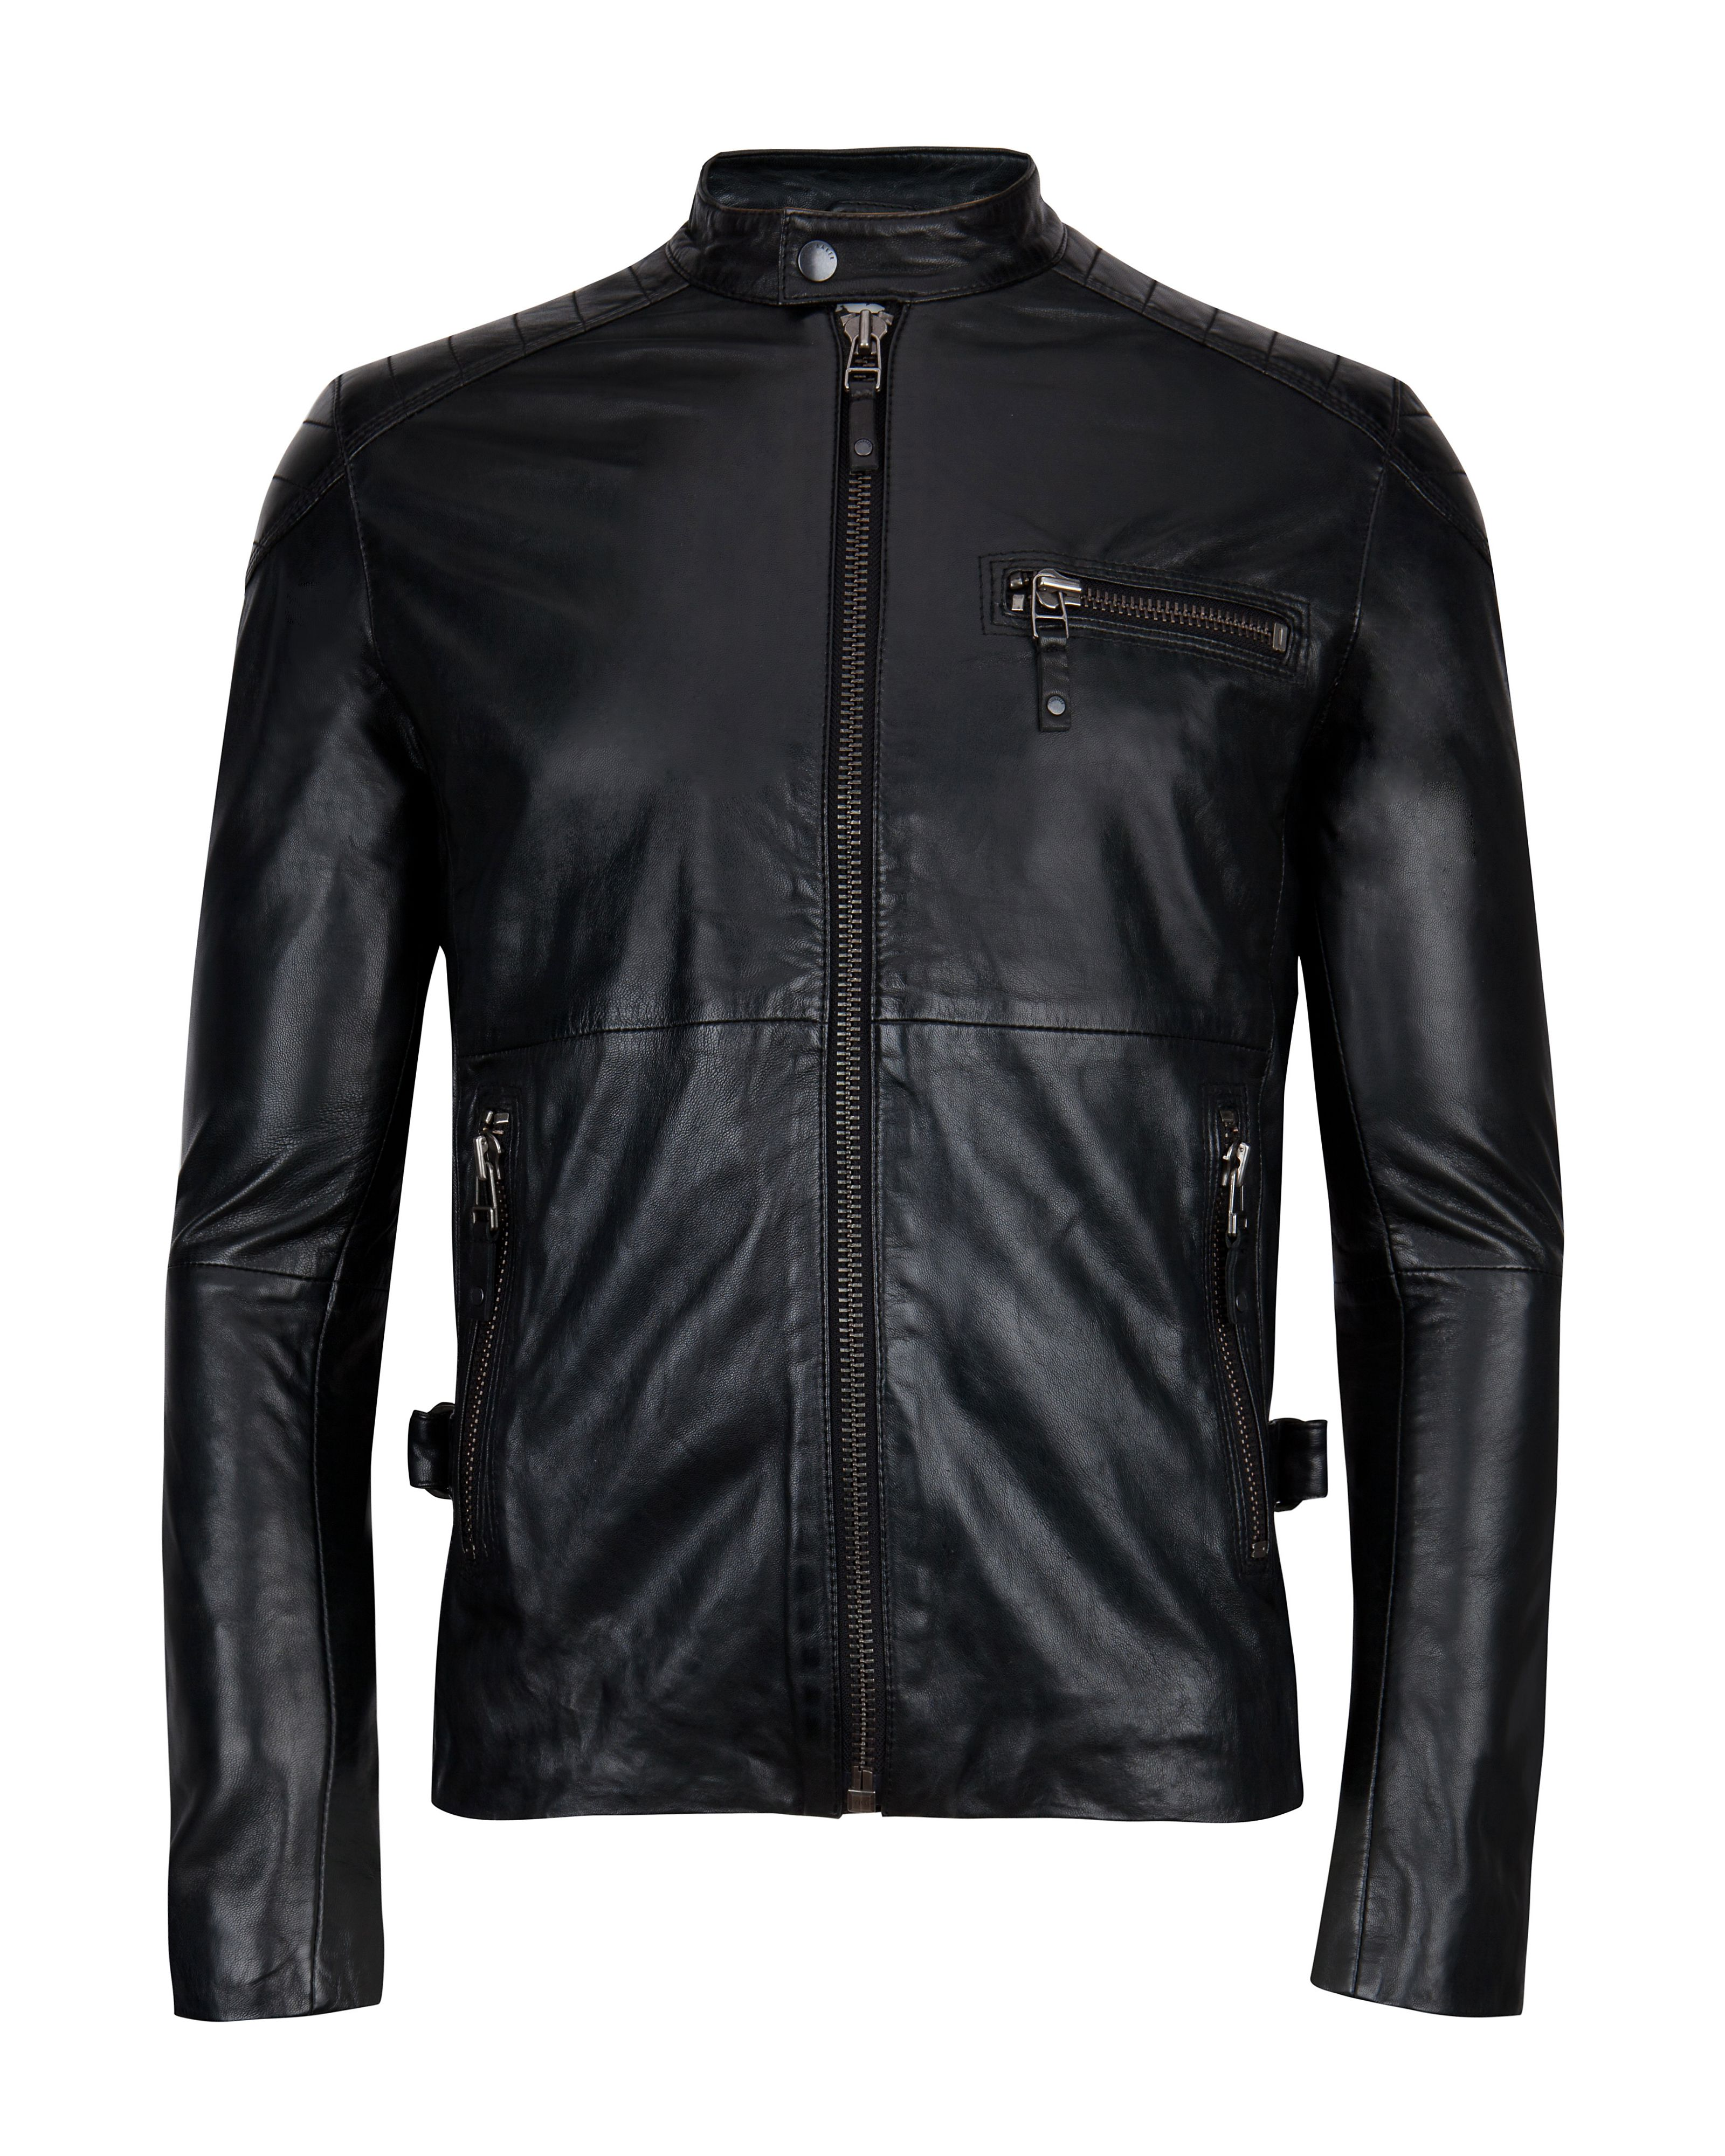 Martell leather biker jacket